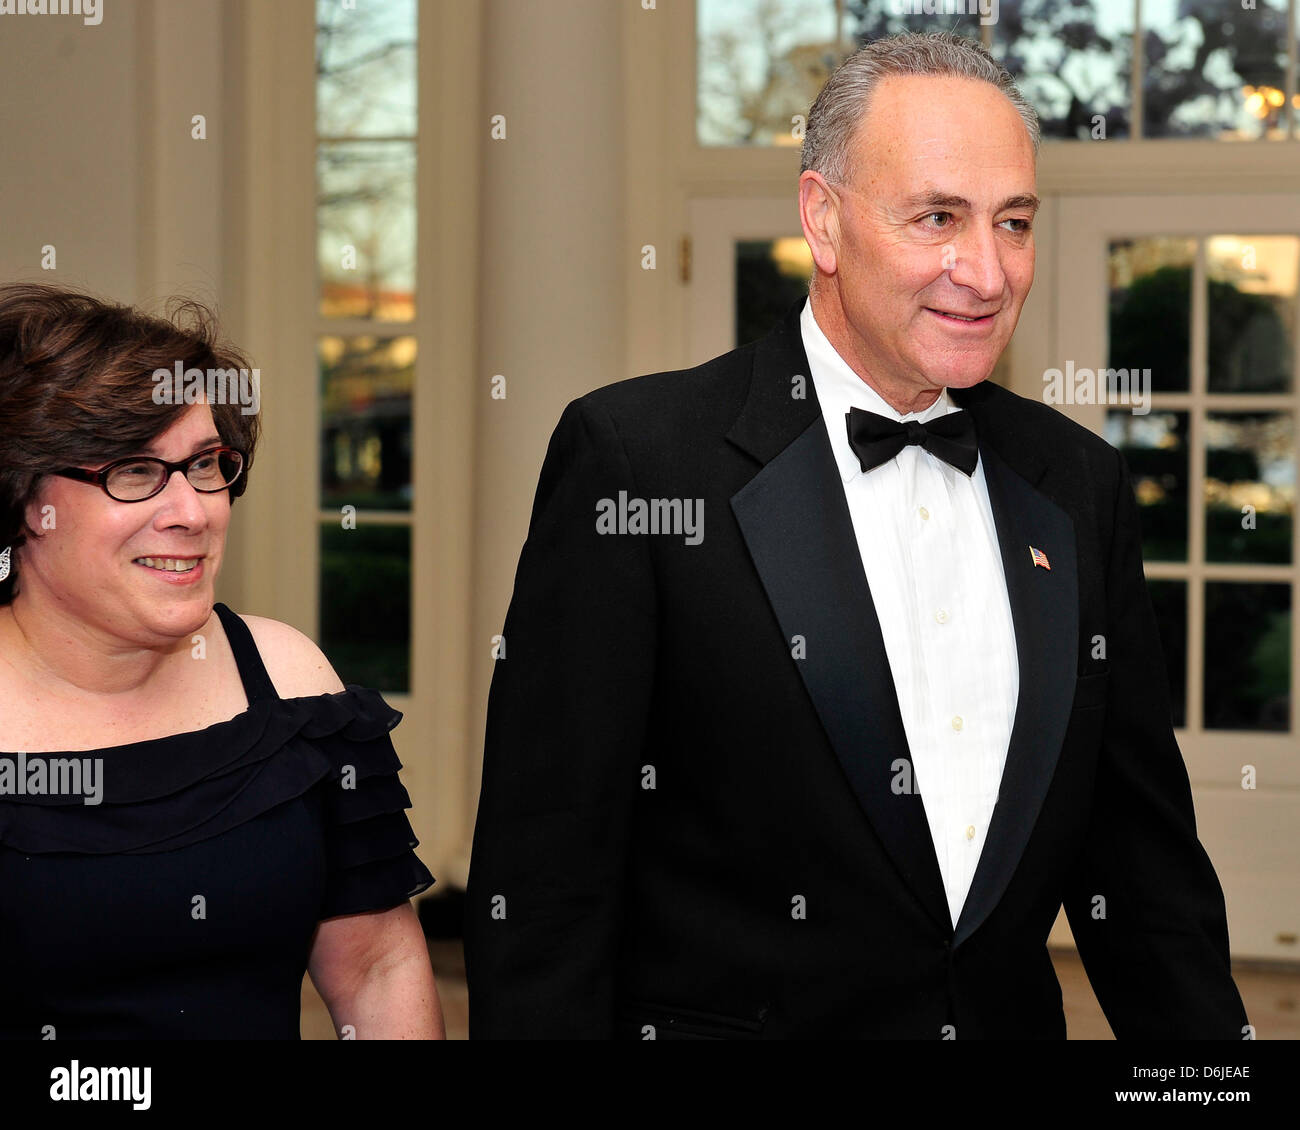 York With His Wife High Resolution Stock Photography And Images Alamy Encuentra fotos de stock perfectas e imágenes editoriales de noticias sobre iris weinshall en getty images. https www alamy com stock photo united states senator charles schumer democrat of new york and his 55725446 html